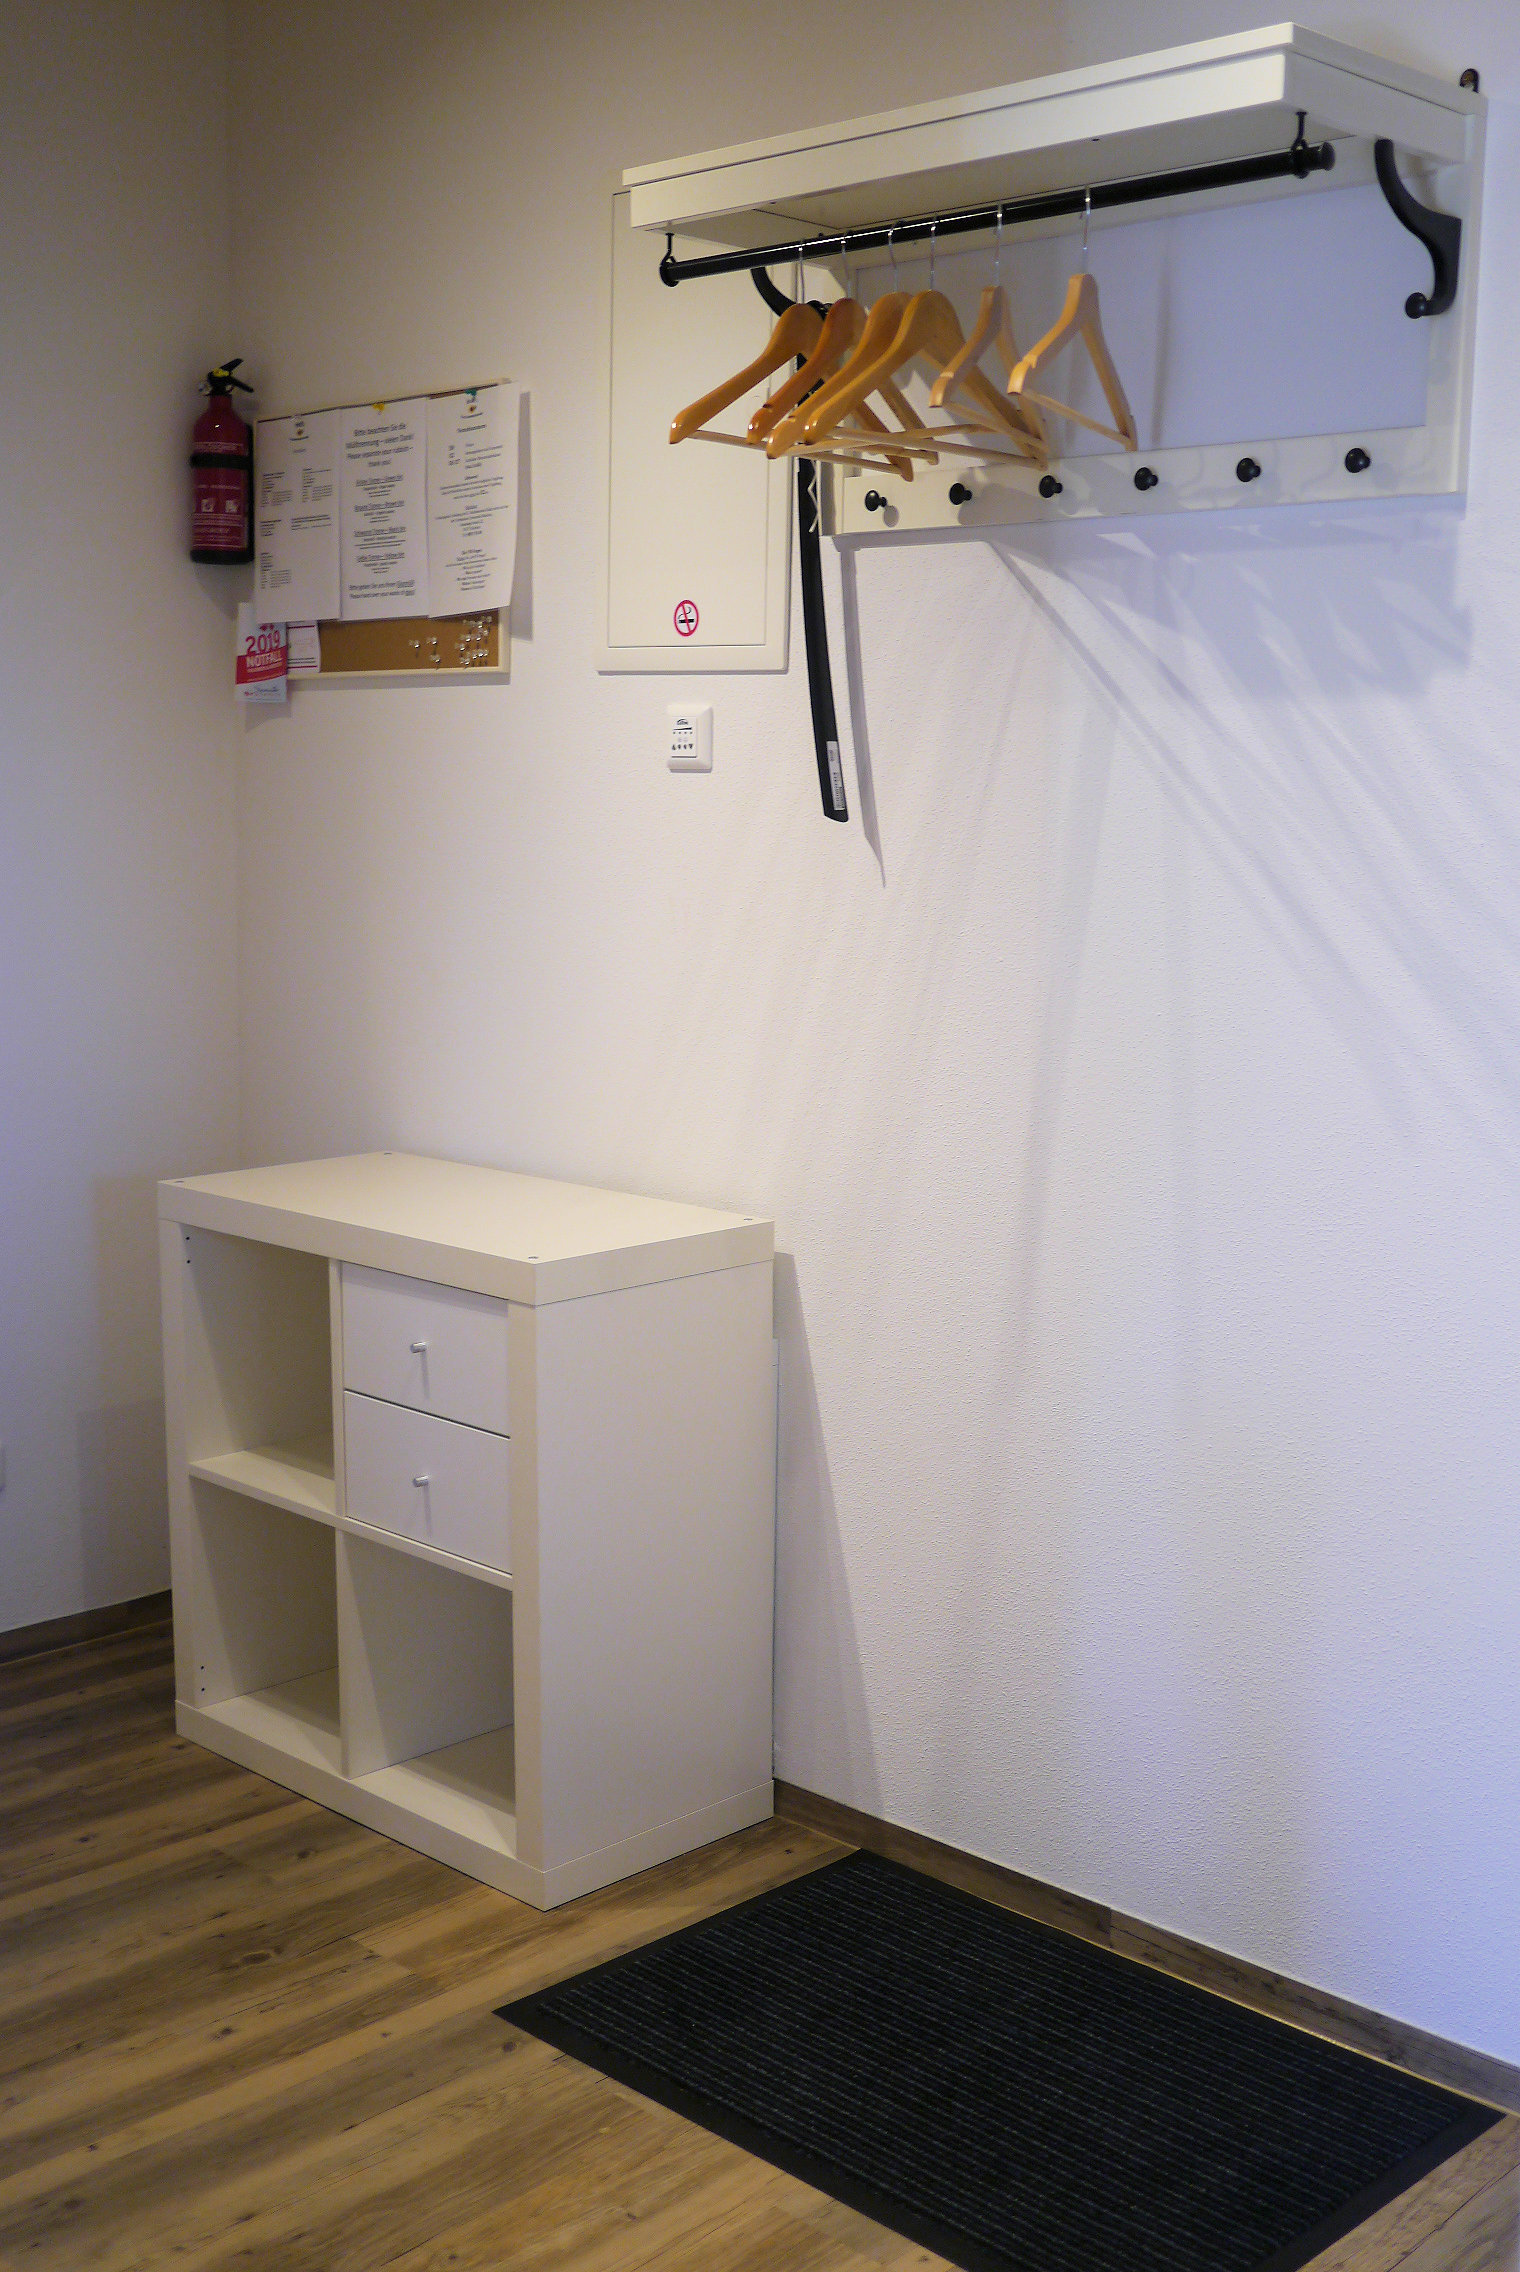 Apt. 2 Entrance area with a coat rack.